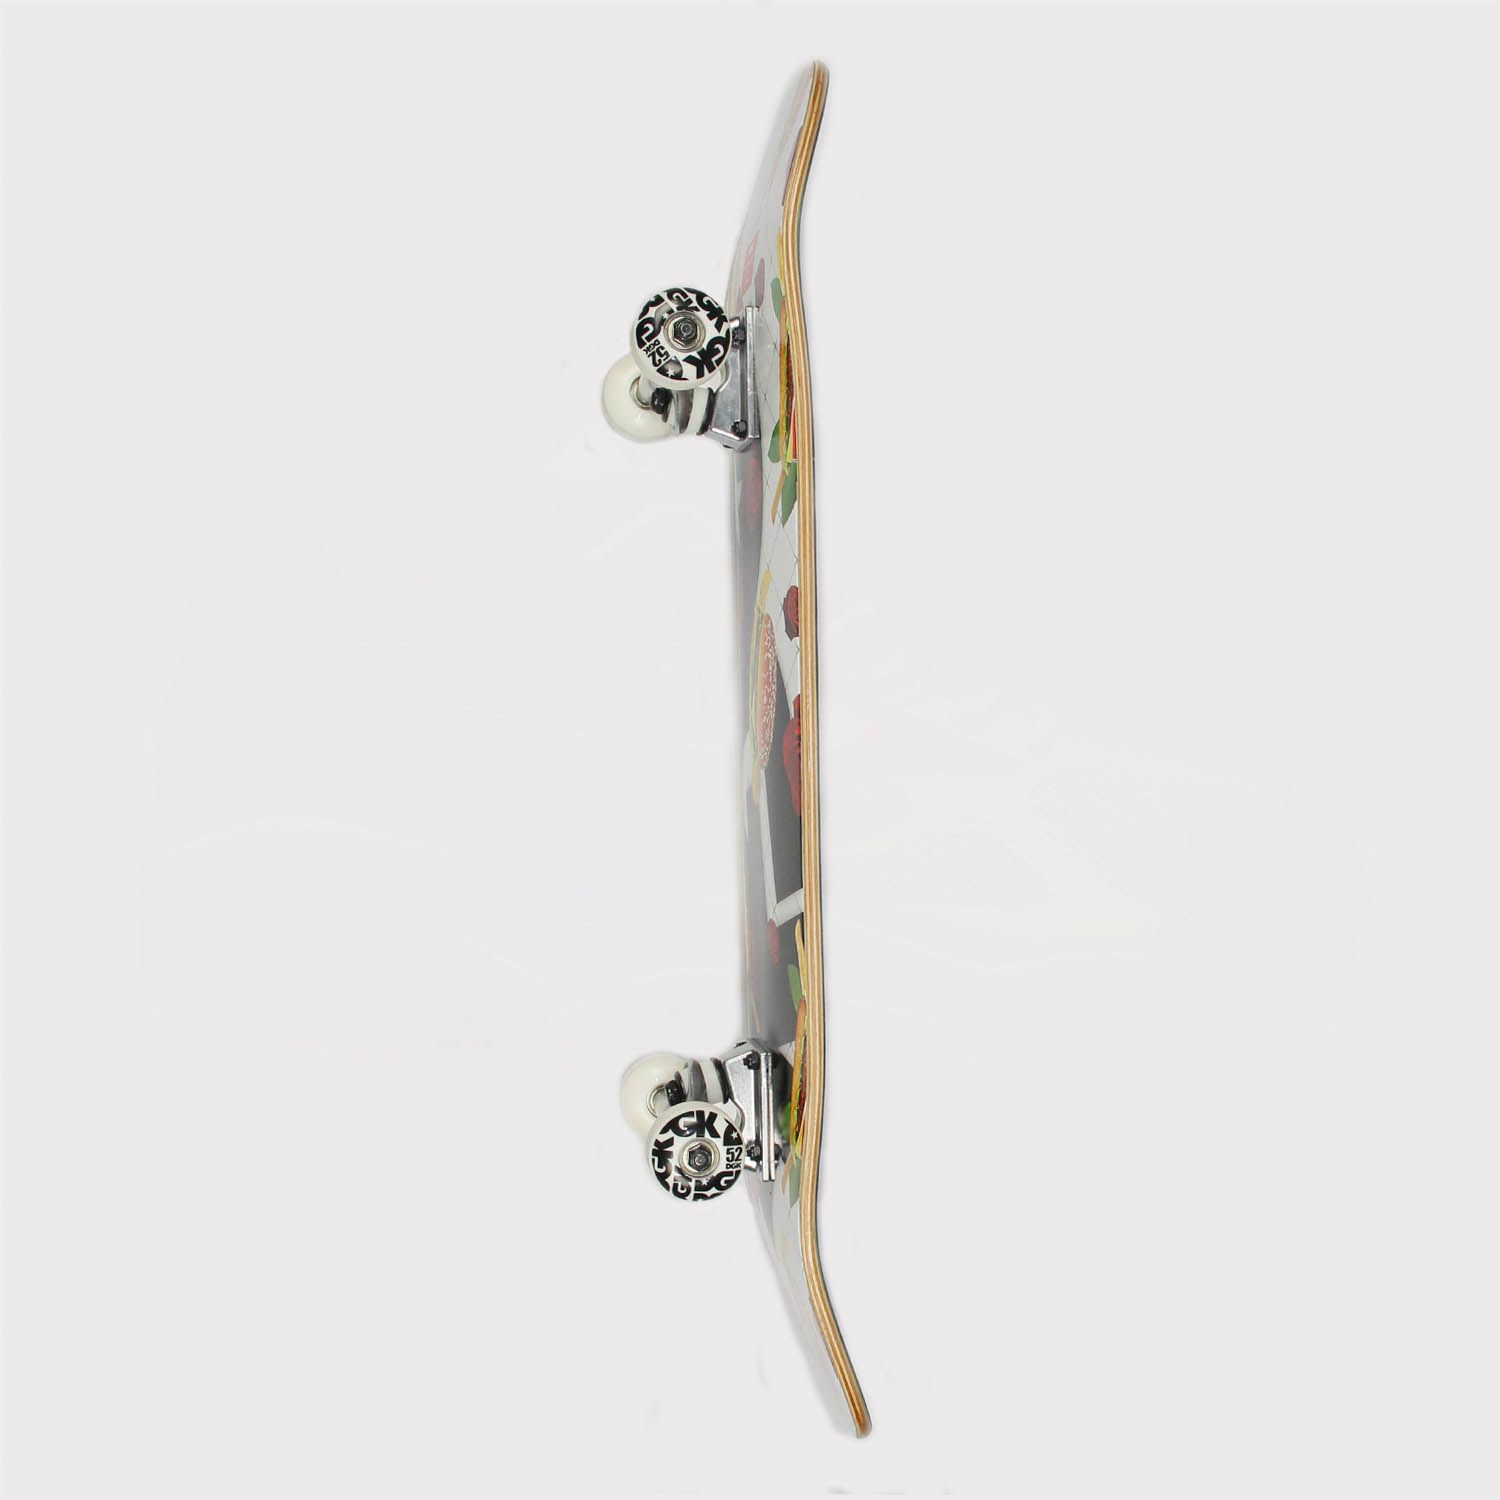 Skate Montado Maple DGK Junk Food 8.0 Branco/Preto